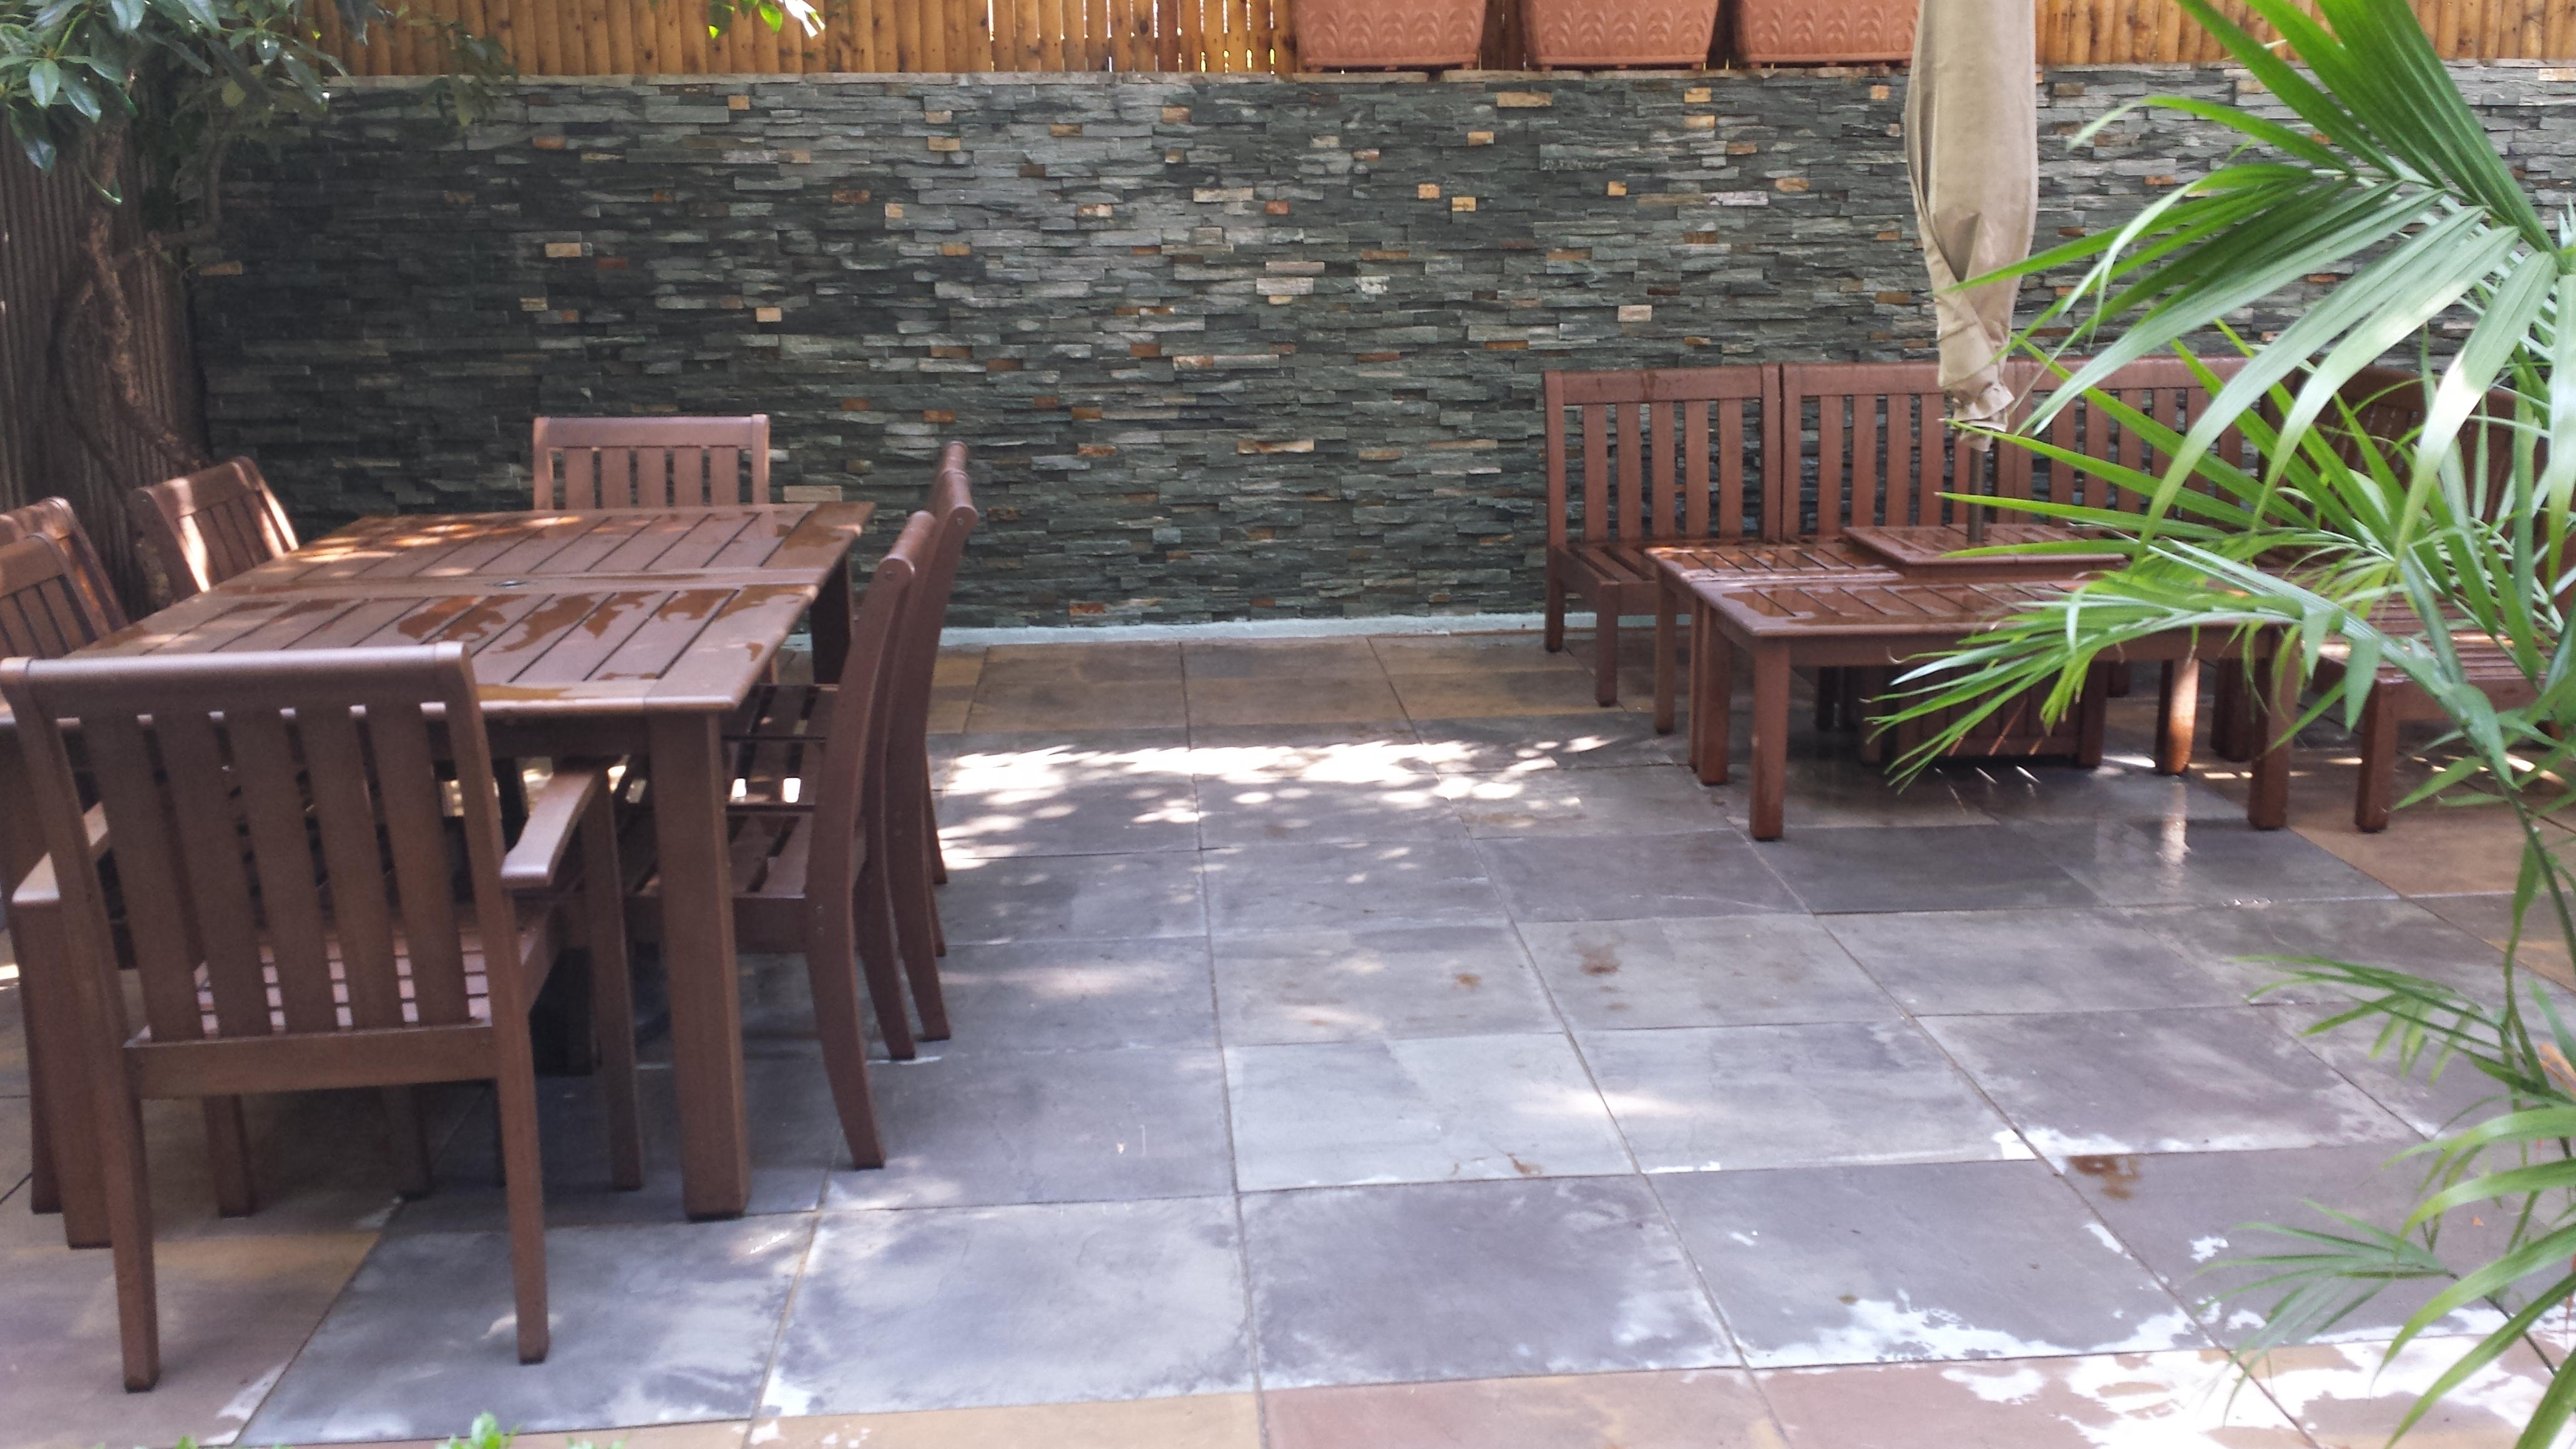 Style Renovations and Decking Corp - Ridgewood, NY 11385 - (646)262-3426 | ShowMeLocal.com